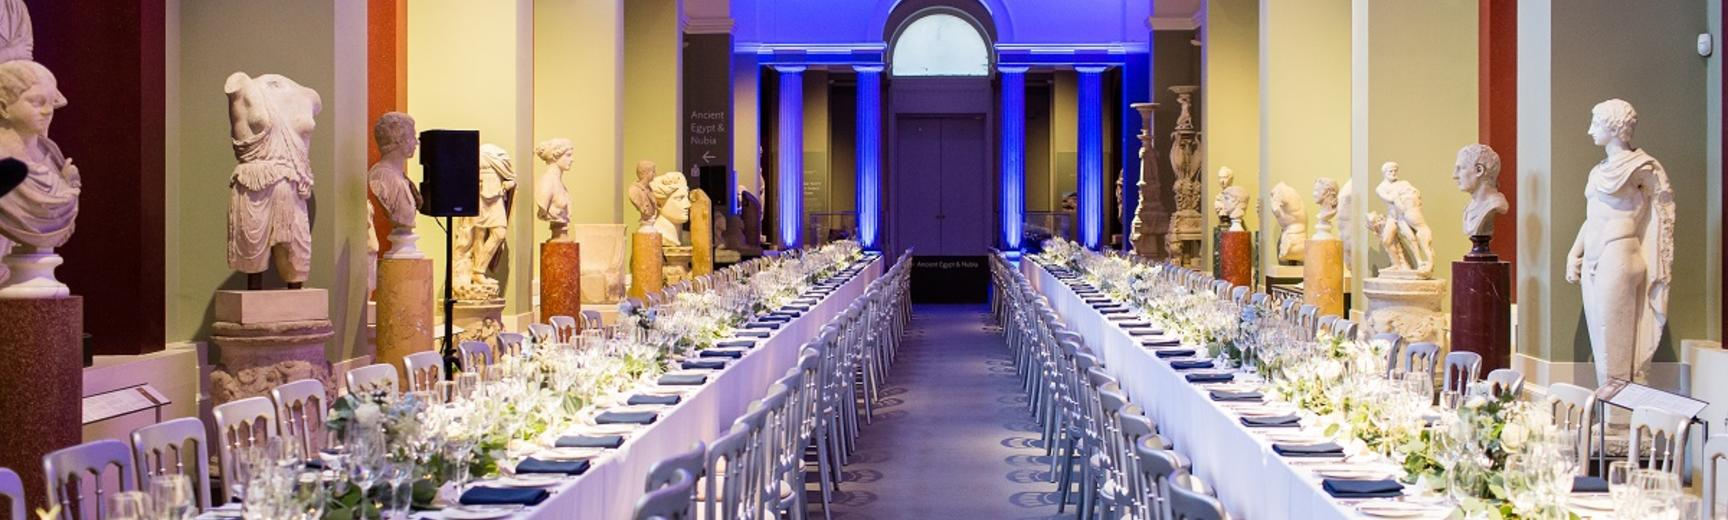 Dining event at the Ashmolean